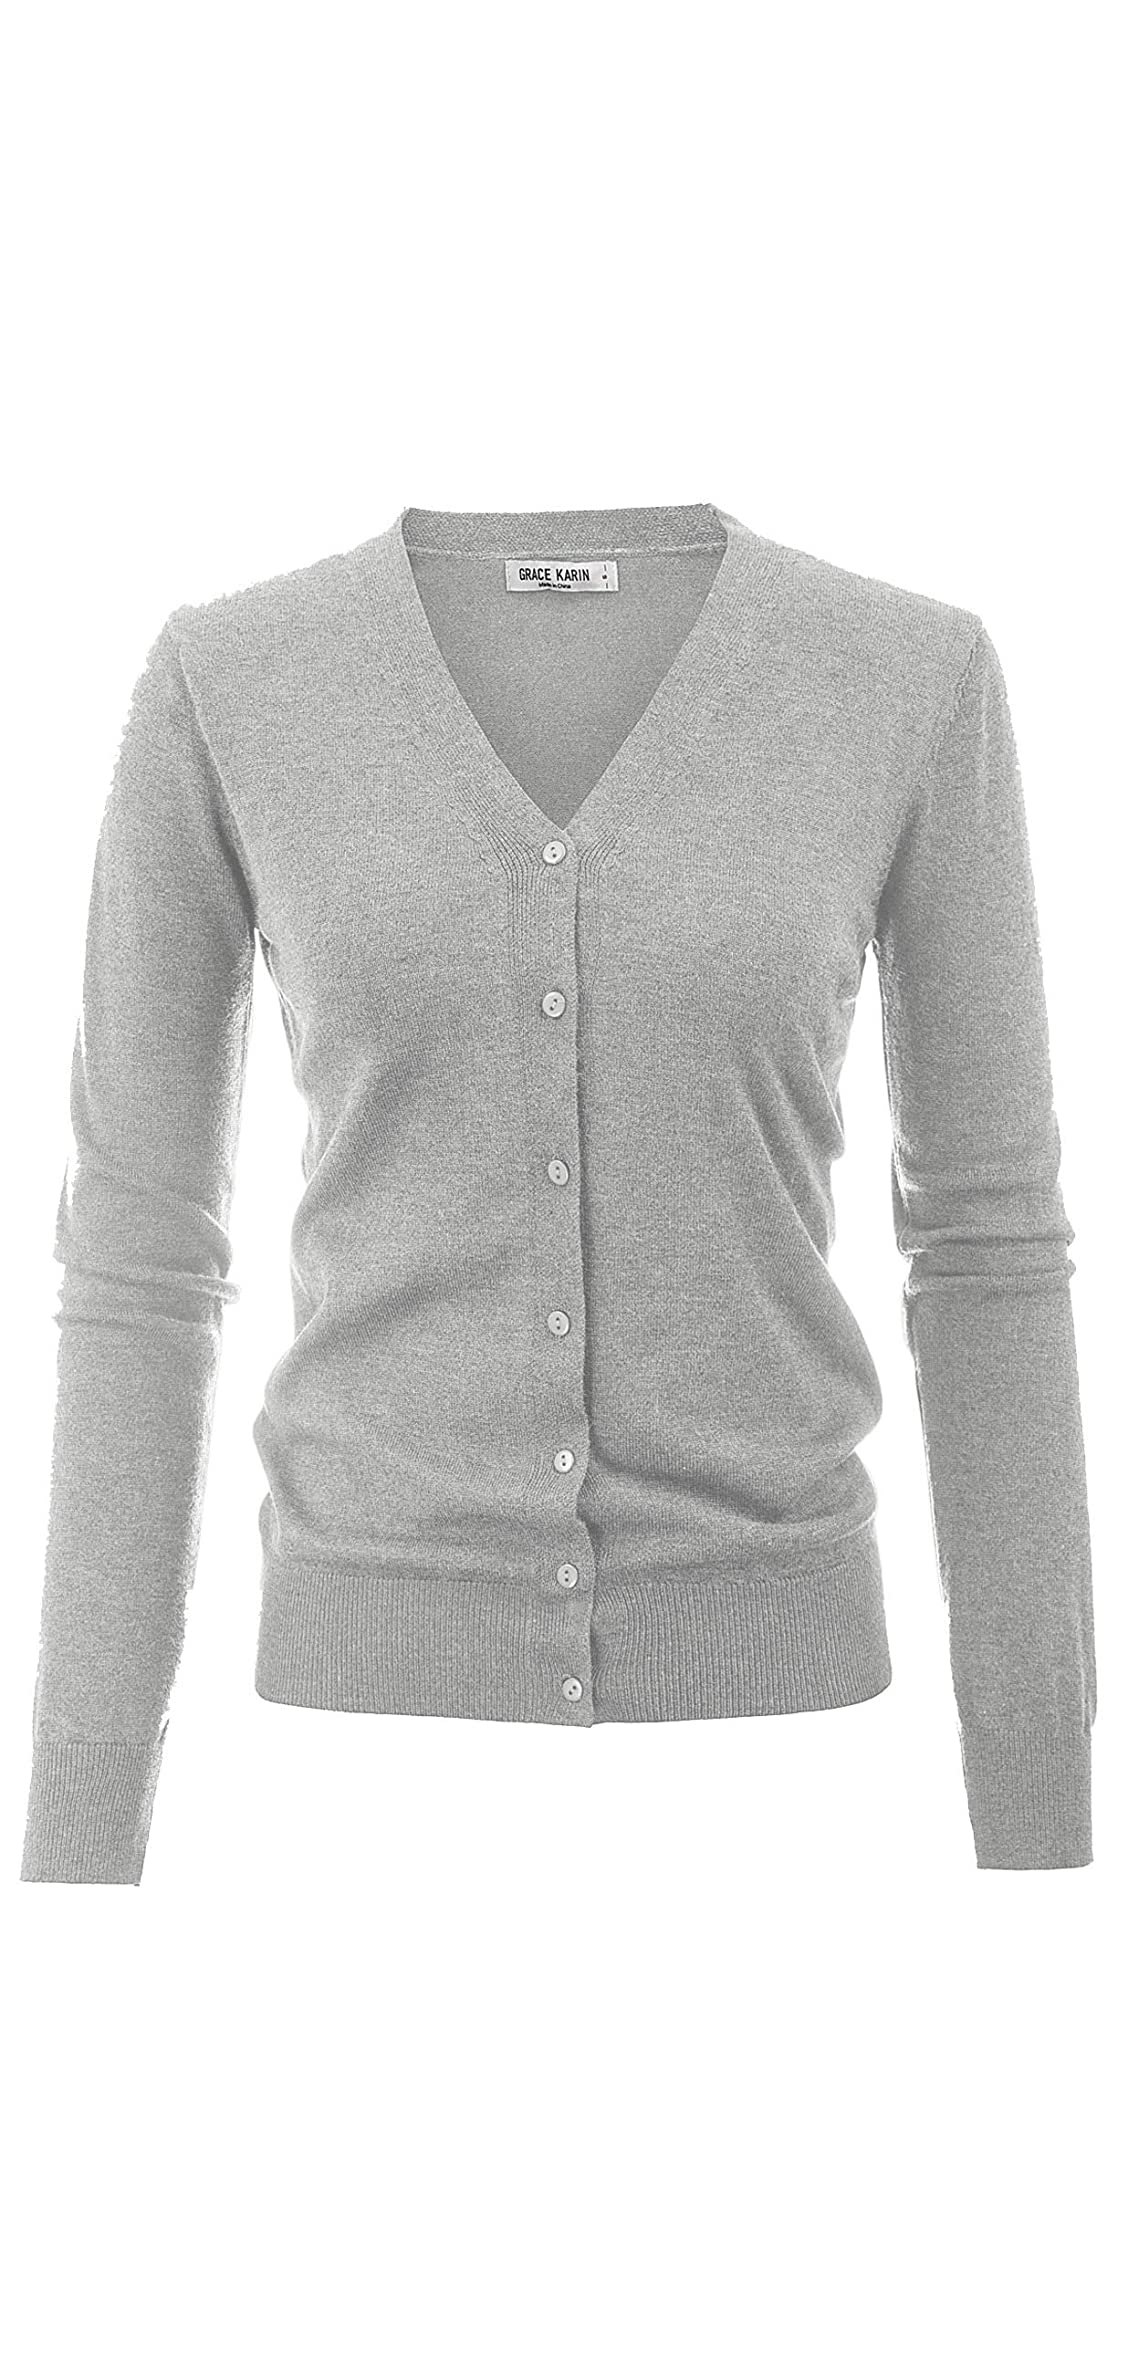 Women's Long Sleeve Button Down Sweater Classic Knit